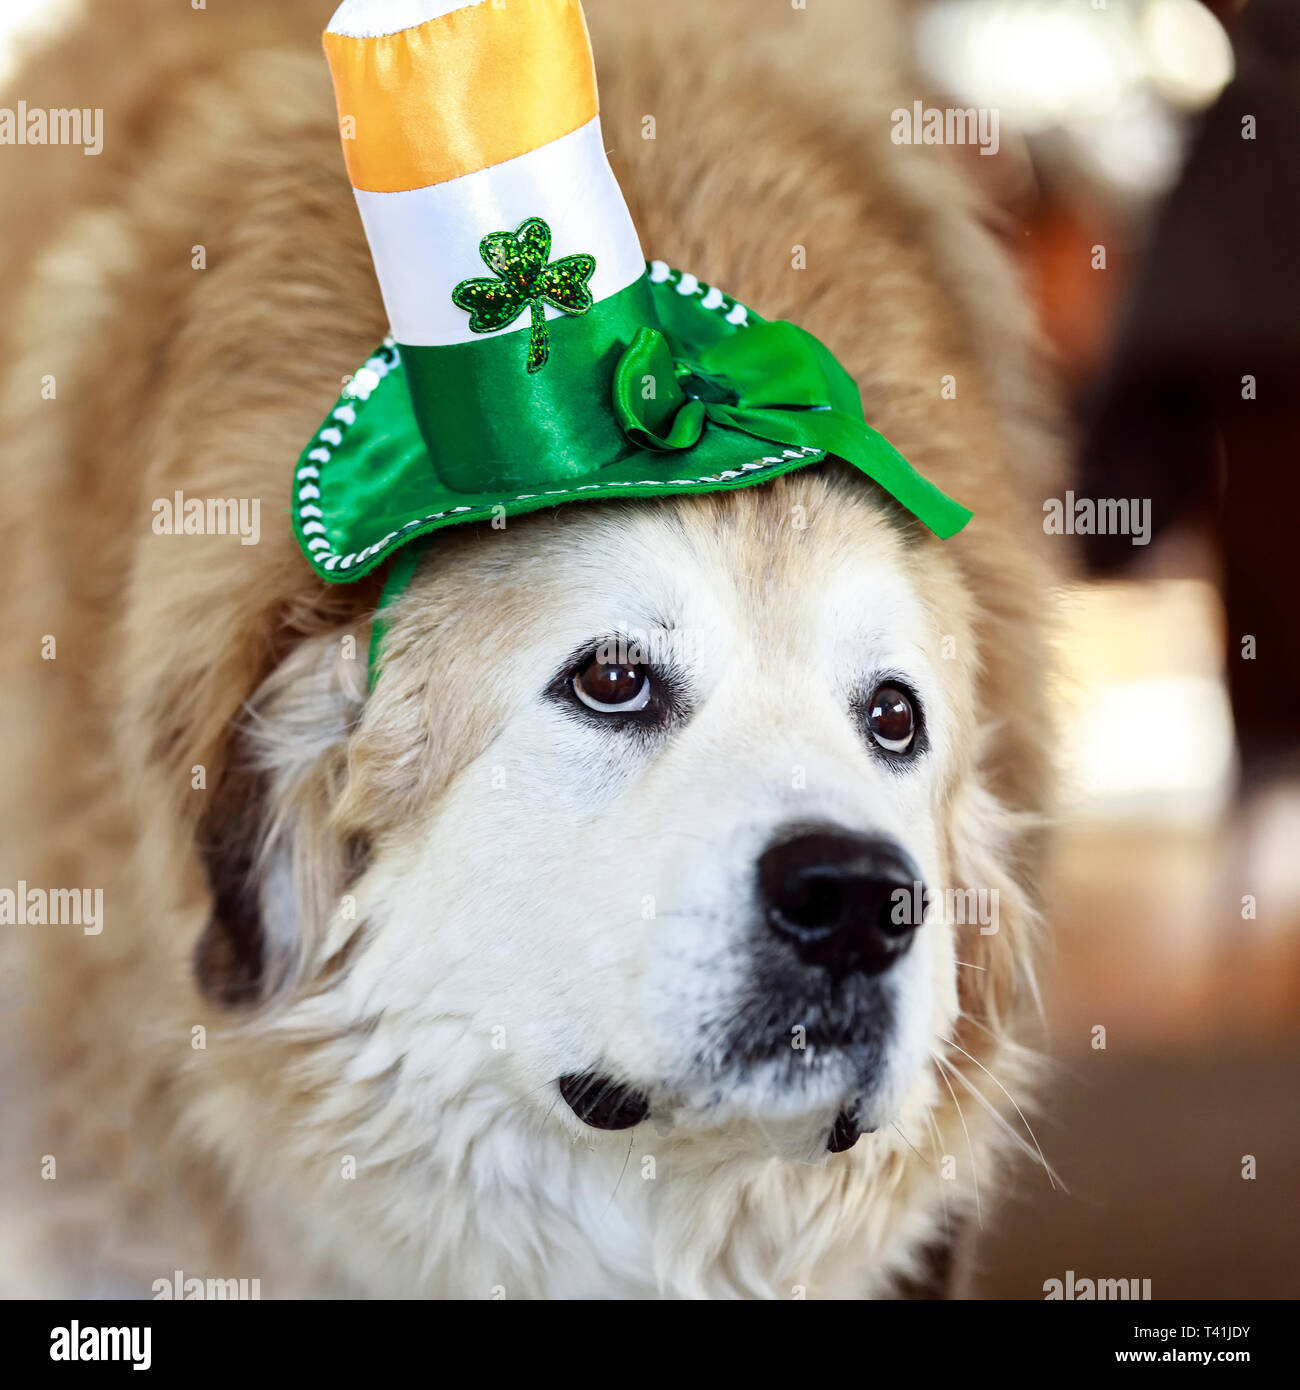 Dog wearing St. Patrick's Day hat. - Stock Image